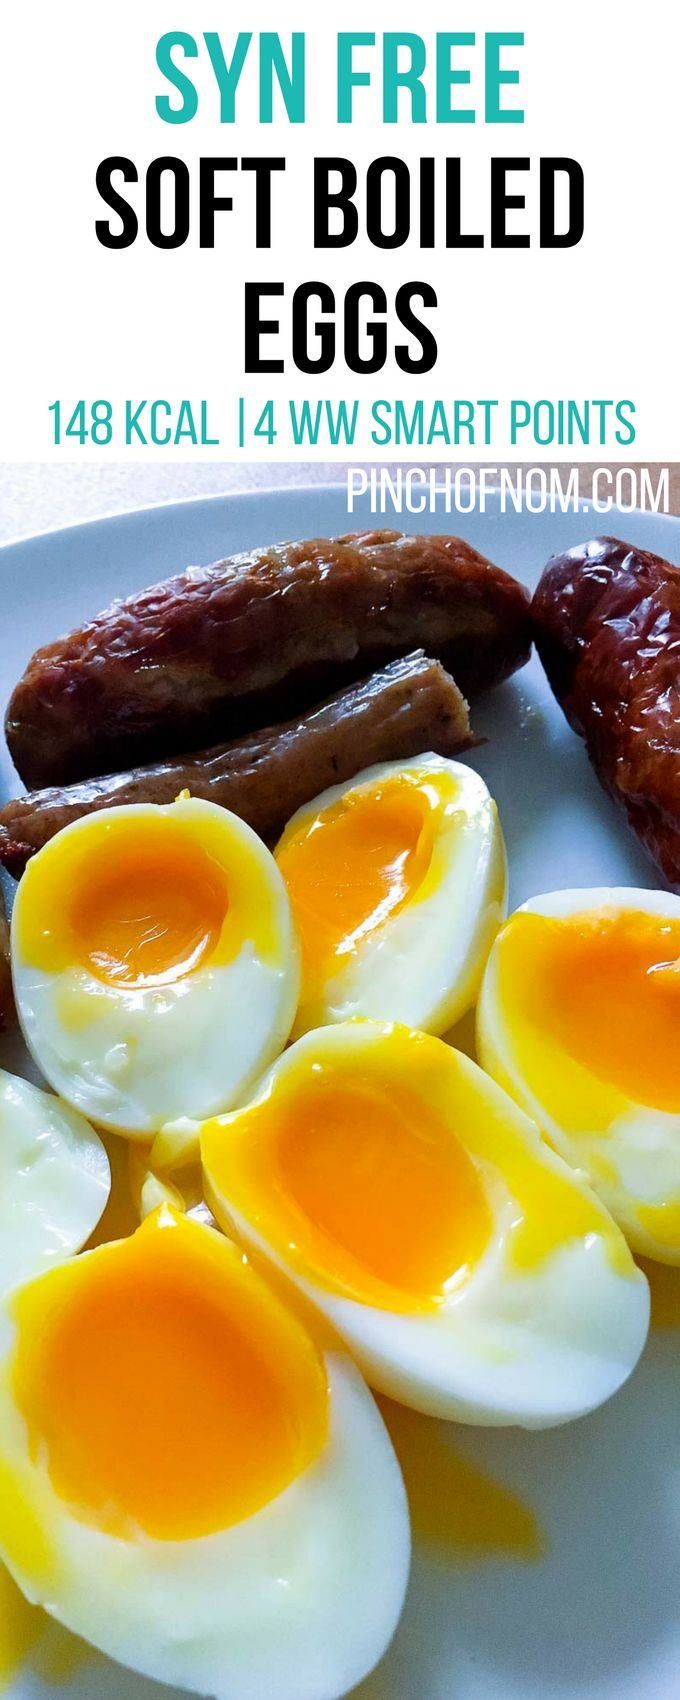 Eggs on slimming world extra easy recipes